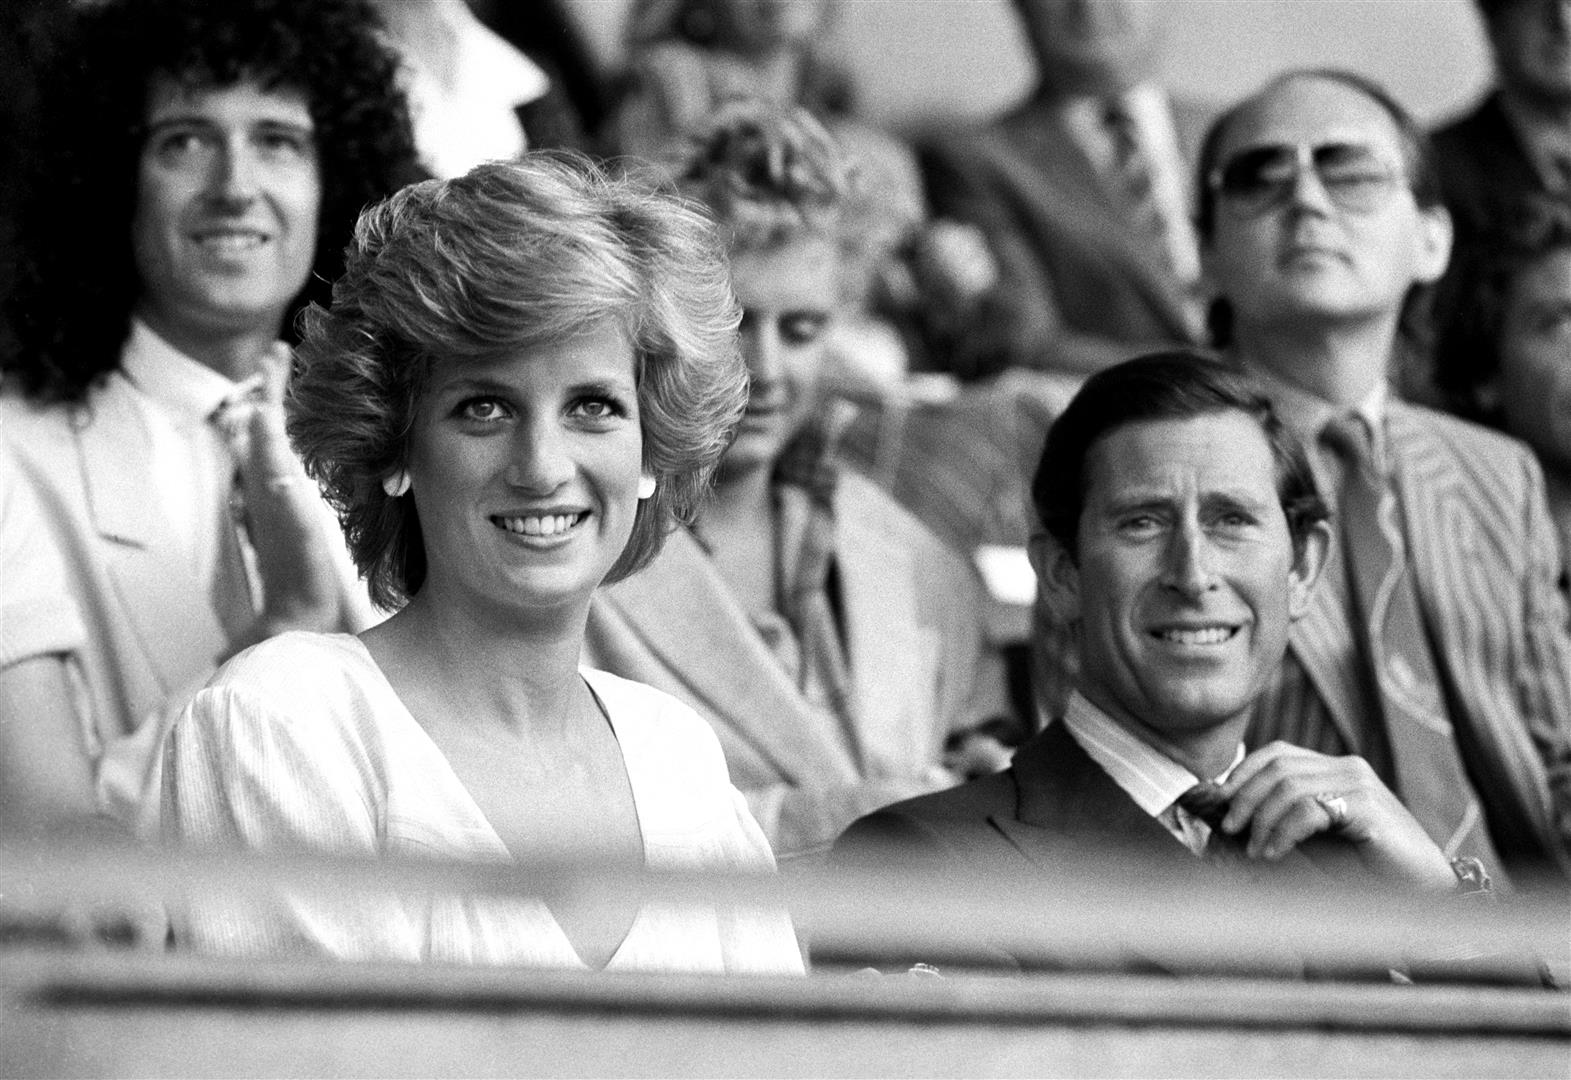 The Prince and Princess of Wales in the Royal Box after opening the Live Aid concert.